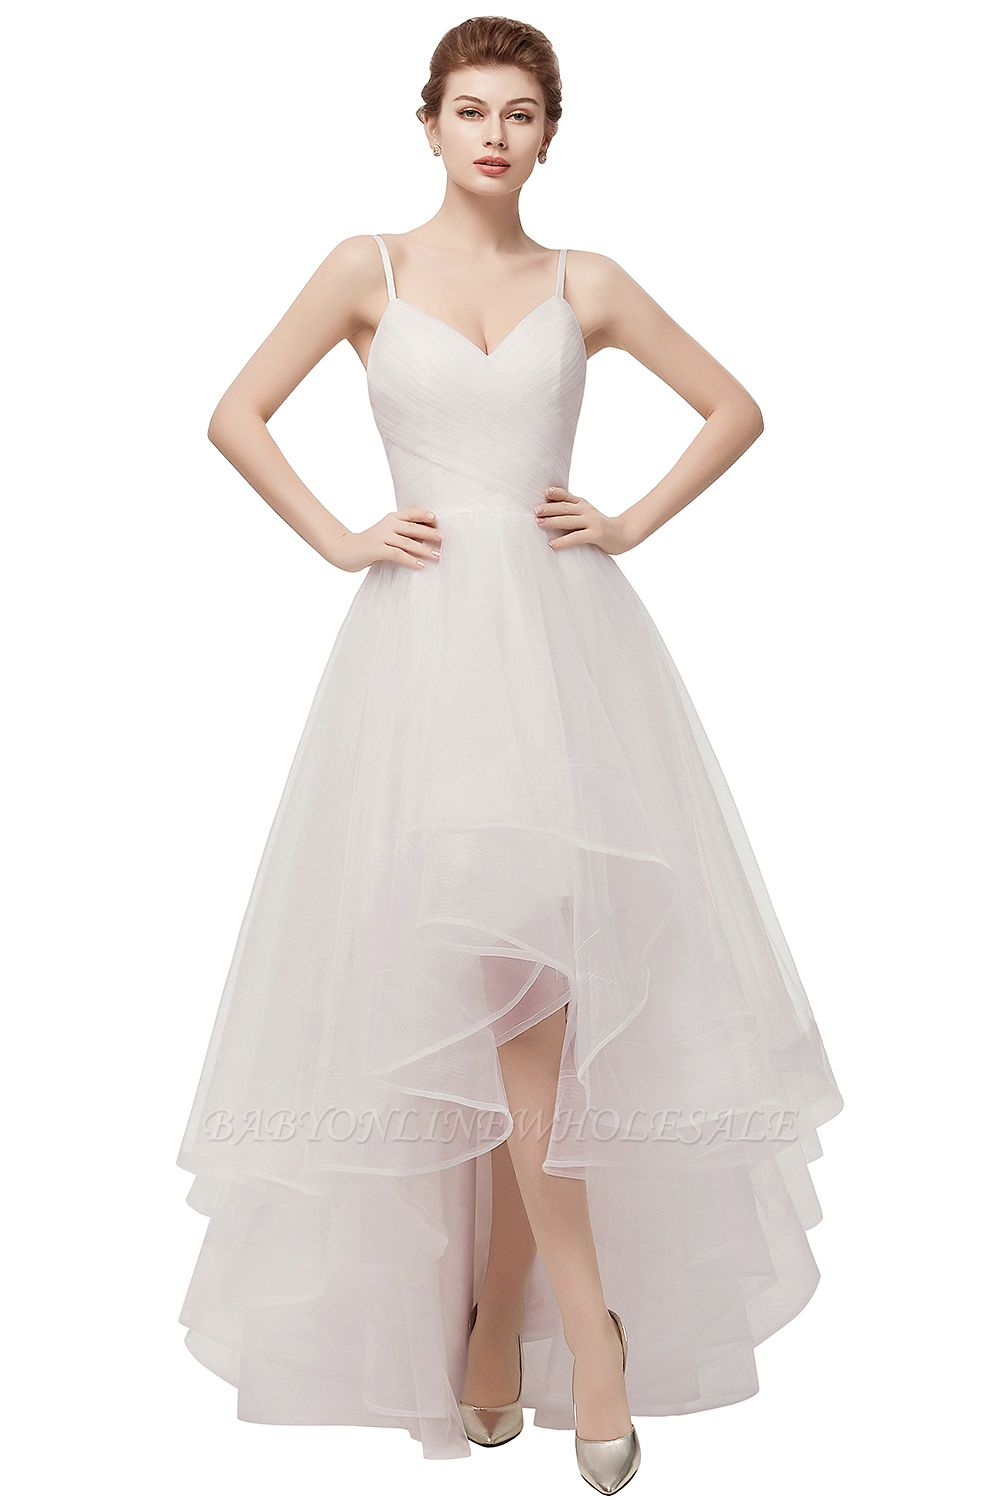 YVONNE | A-line Hi-lo Spaghetti Sweetheart Tulle Ivory Wedding Dresses with Ruffles